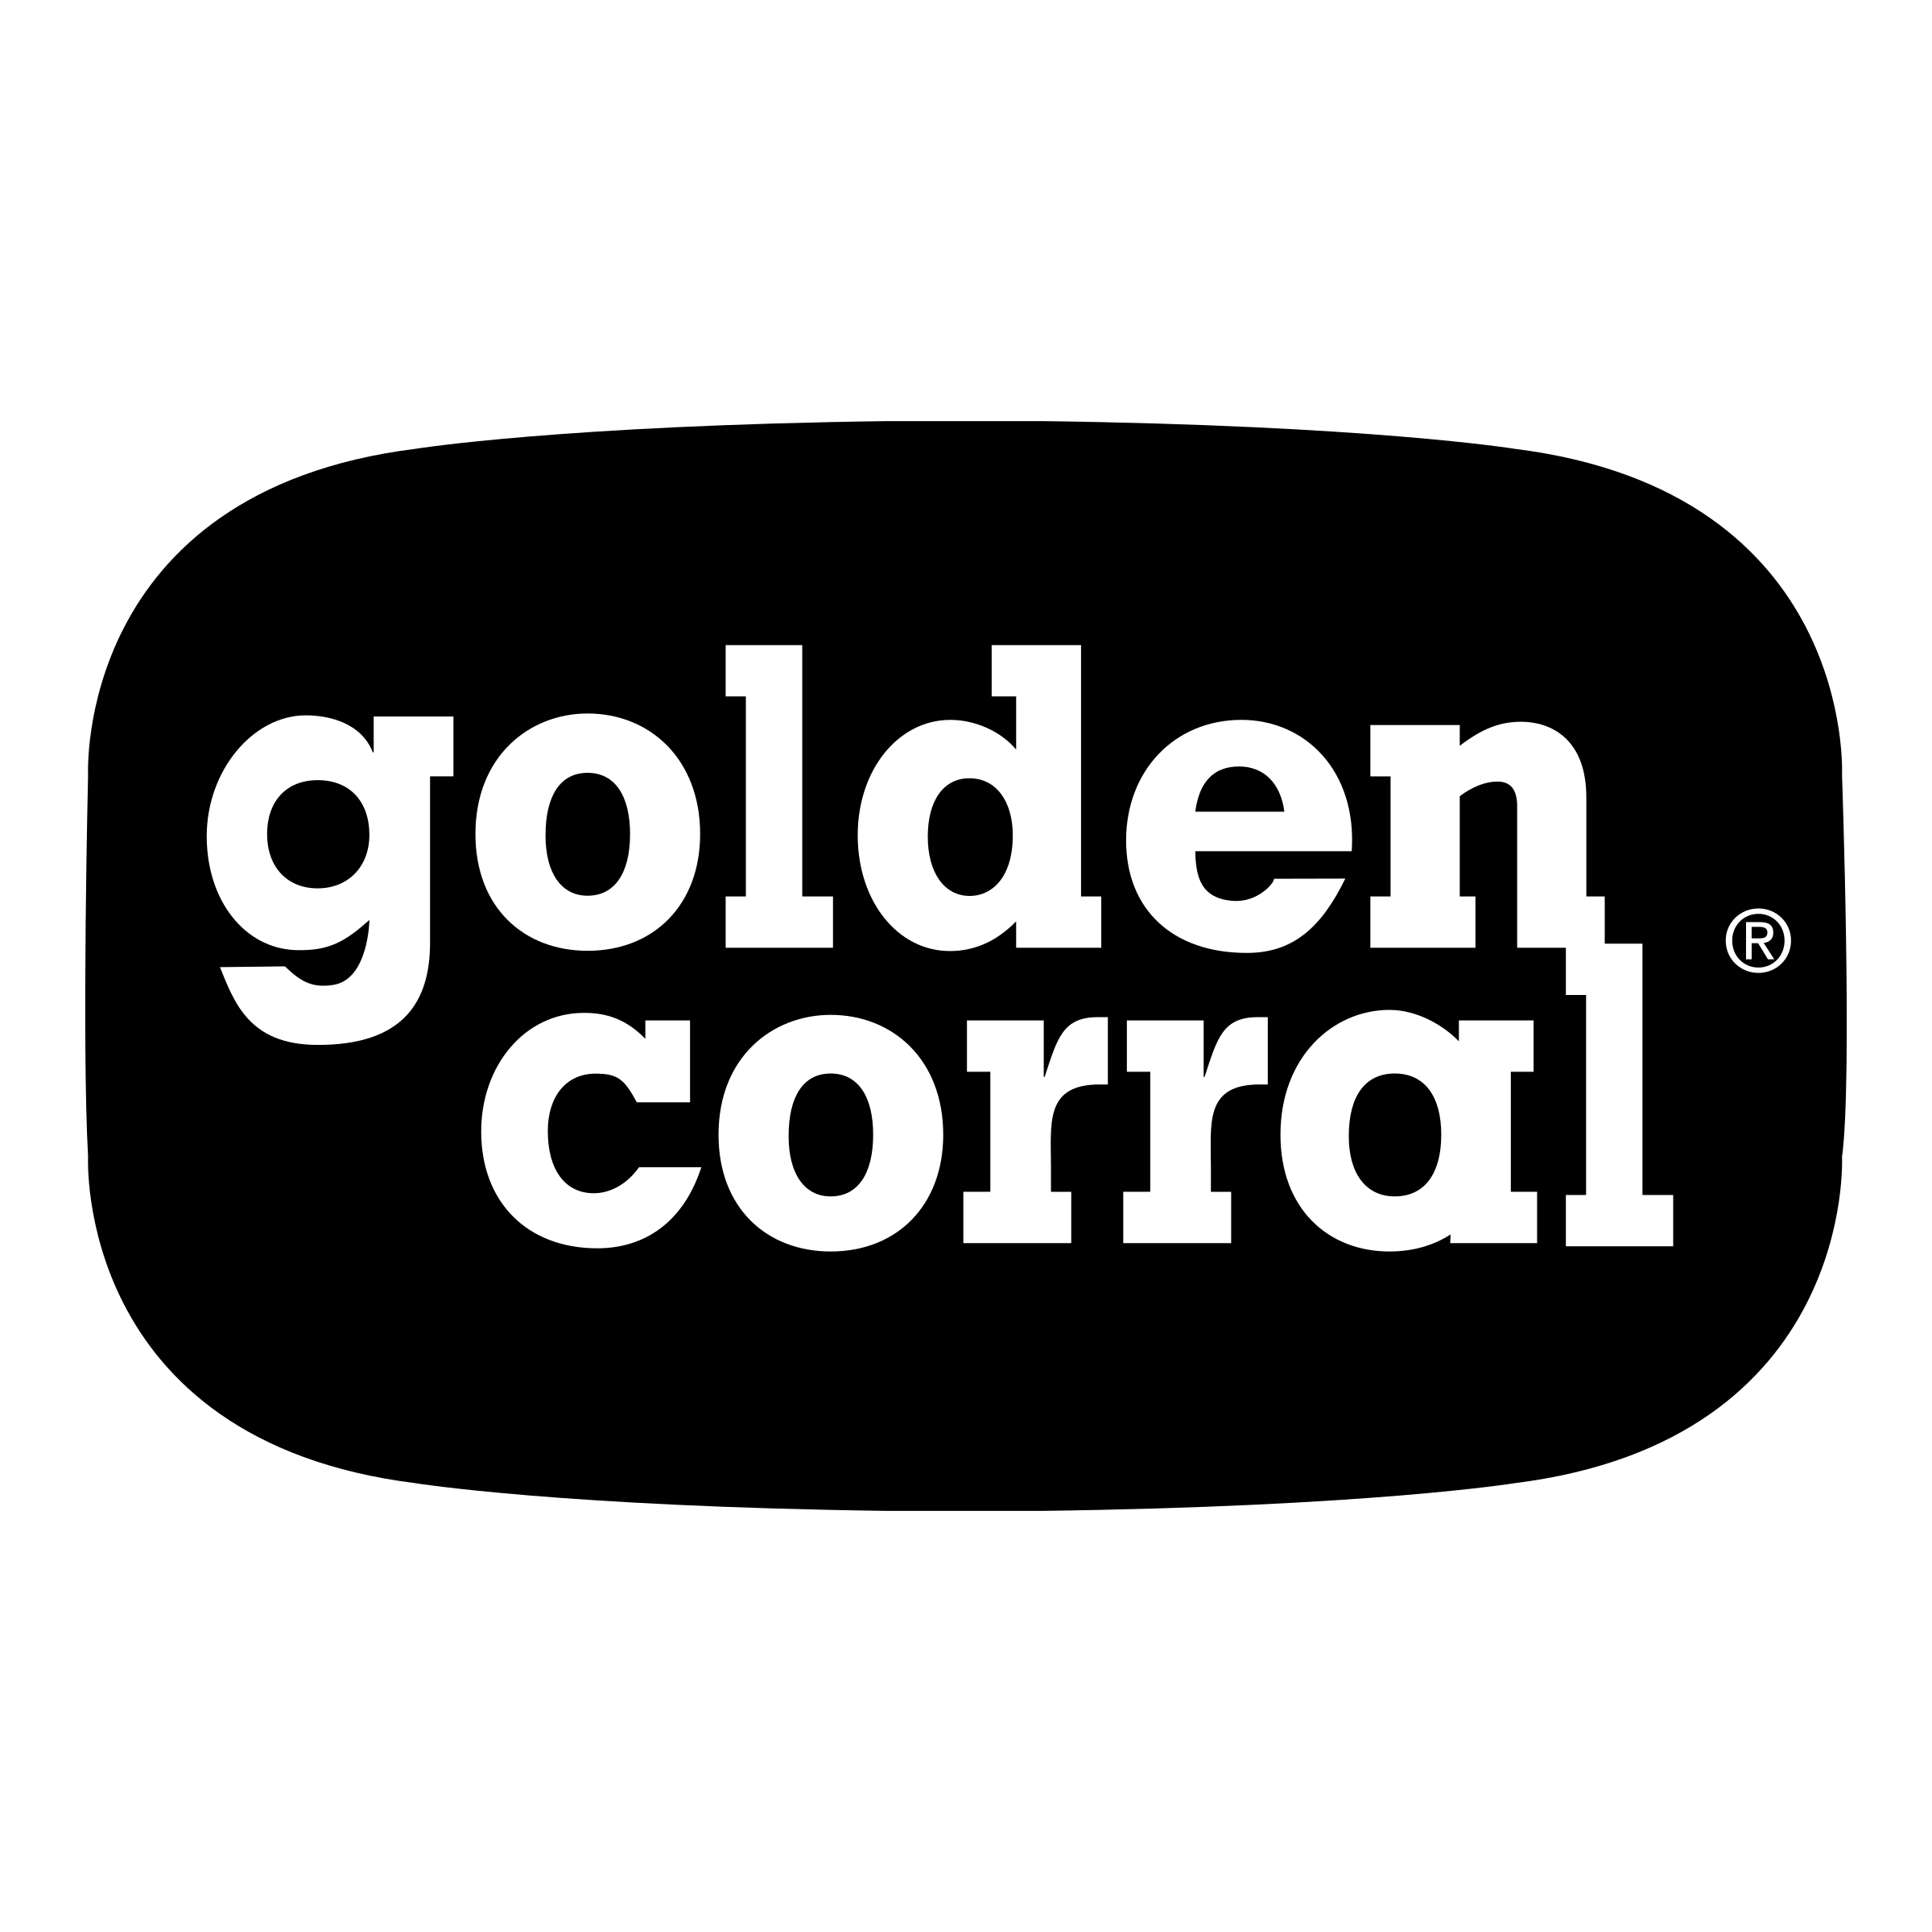 https://seeproductionservices.com/wp-content/uploads/2020/07/golden-corral.png